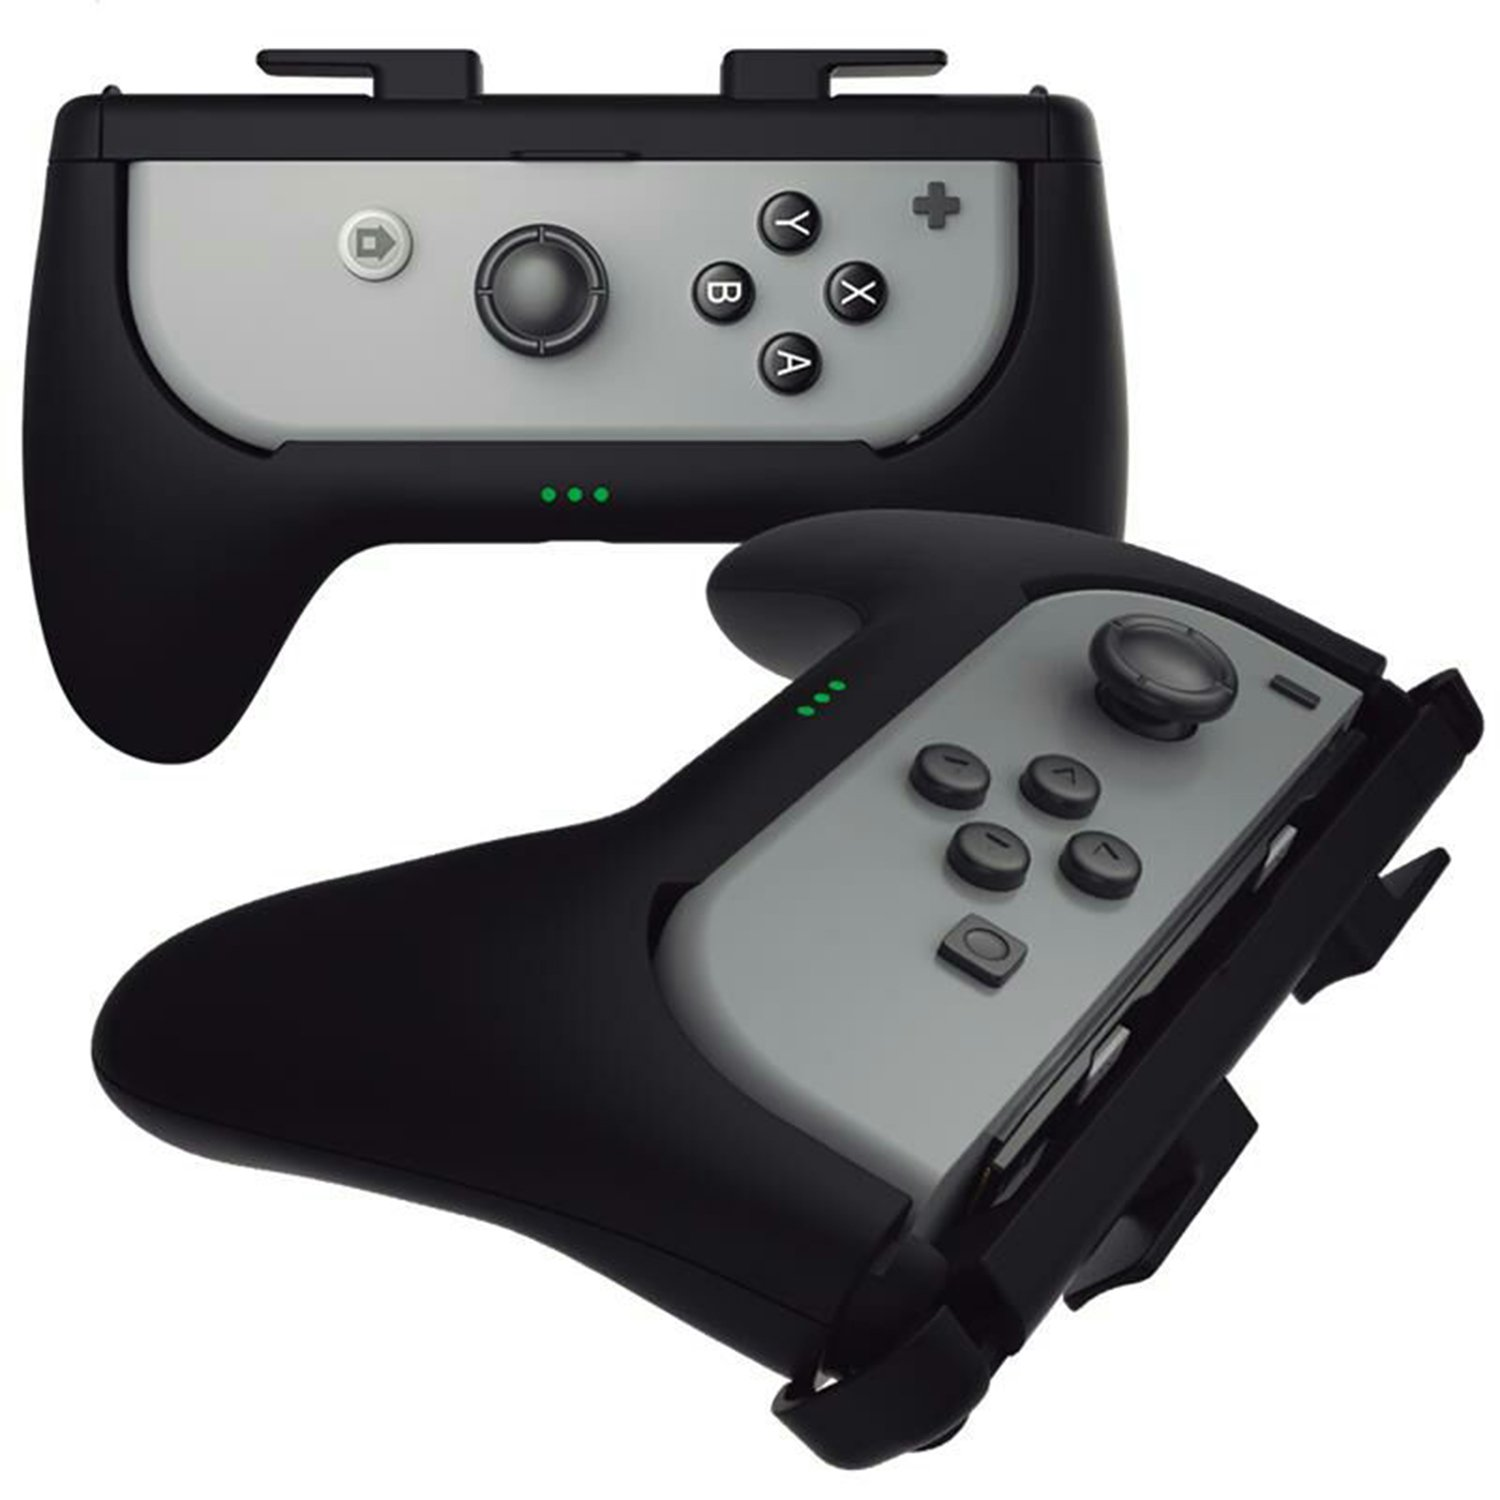 Sliq Gaming Nintendo Switch Joy Con Charge Grip (Black) - Controller Grip + Built-In Battery Pack - Adds Up To 5 Hours Of Battery Life While You Play